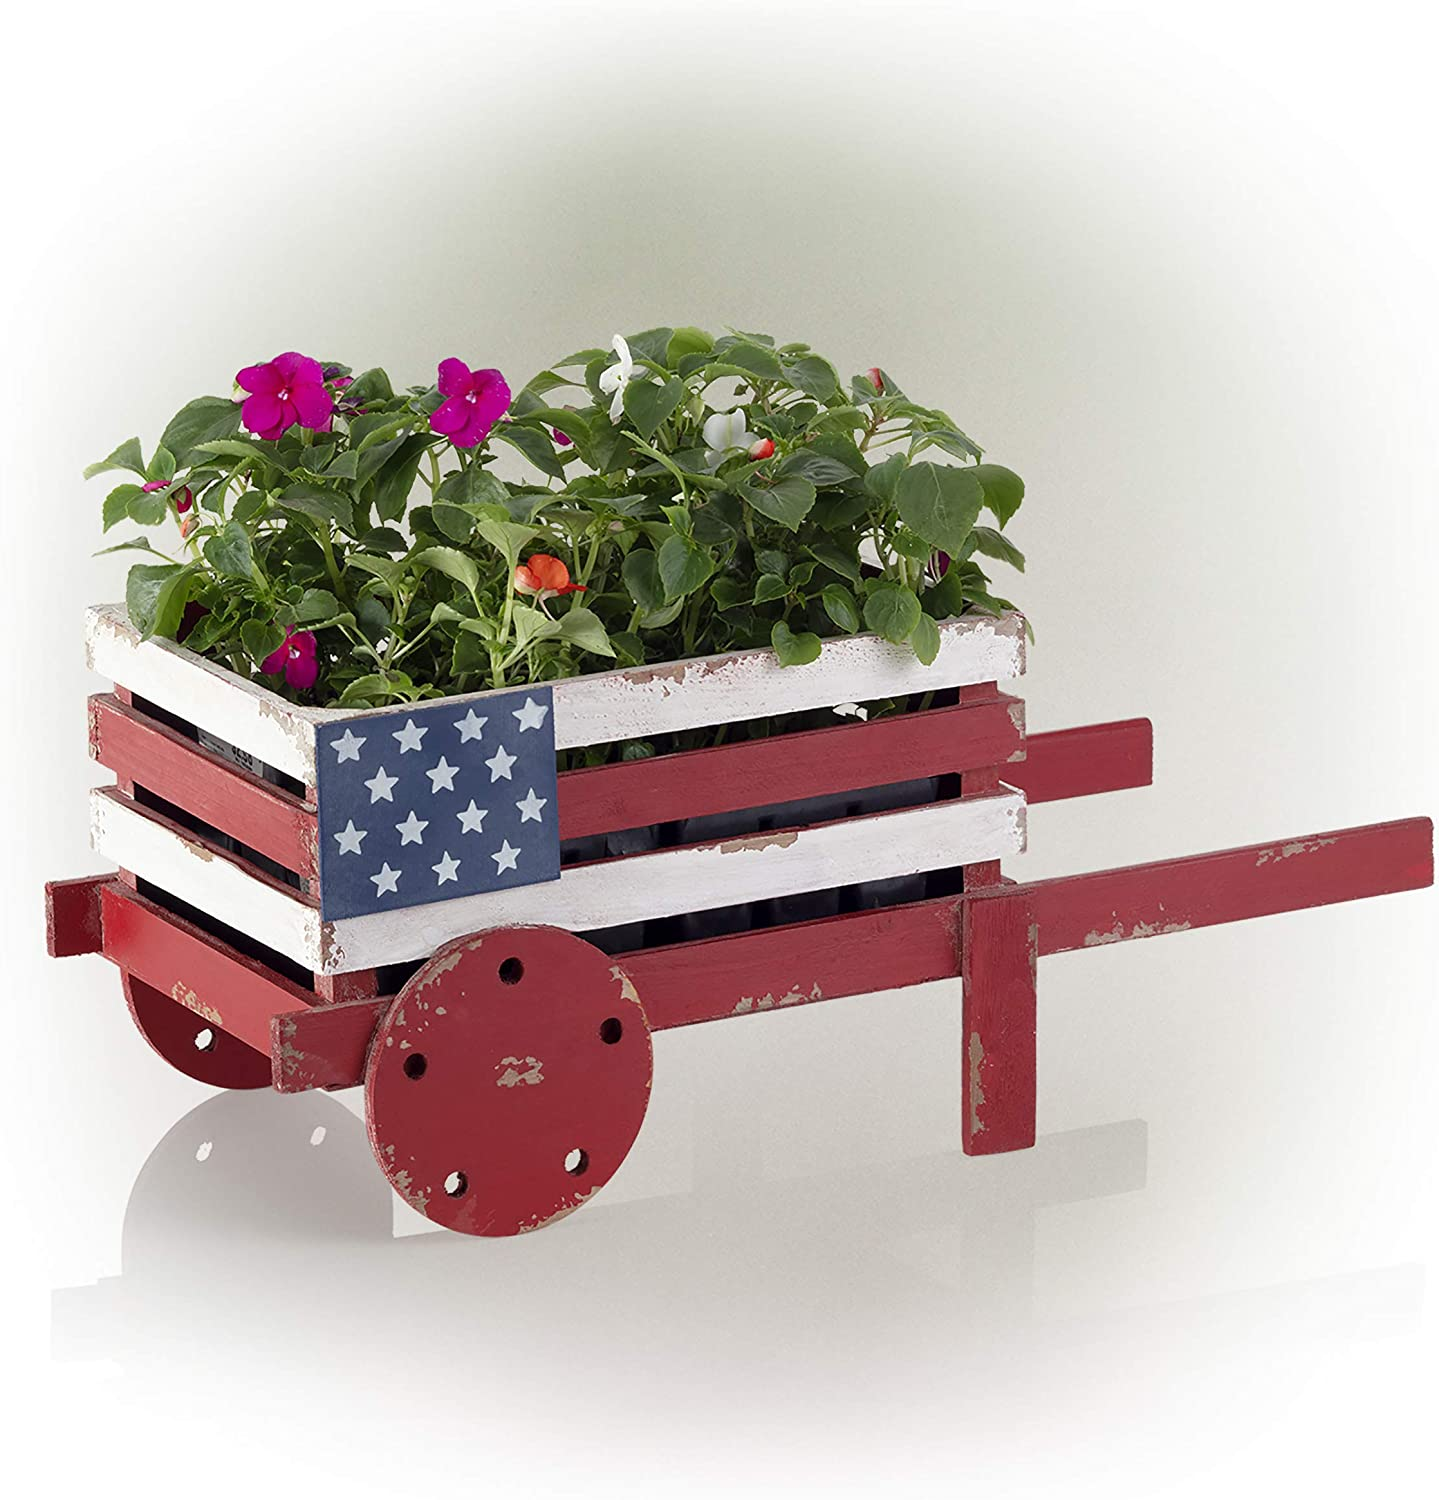 "Alpine Corporation BKY100HH American Flag Wooden Wheel Barrel Planter, 9 Inch Tall, 9"", Red, White & Blue"